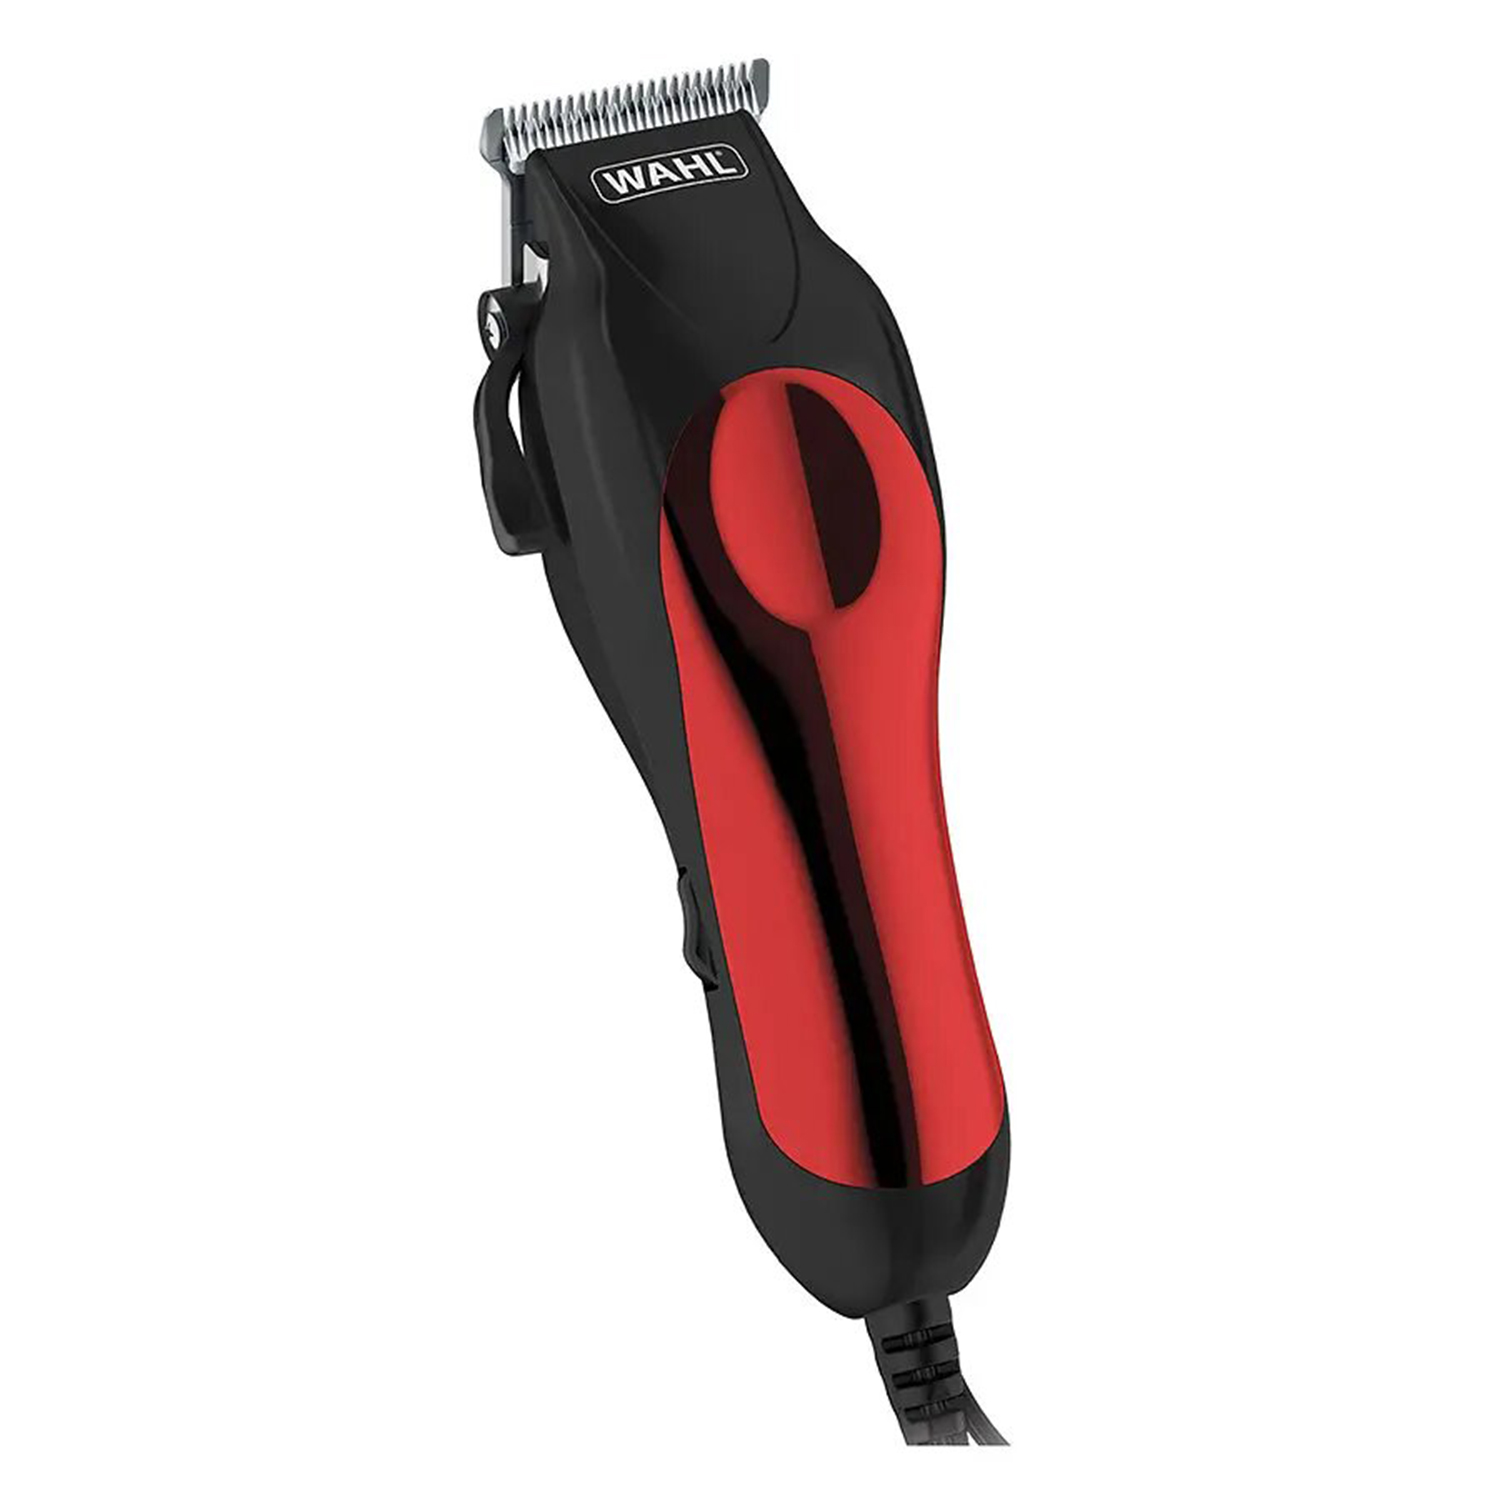 Wahl Clipper T-Pro Precision Haircut Kit